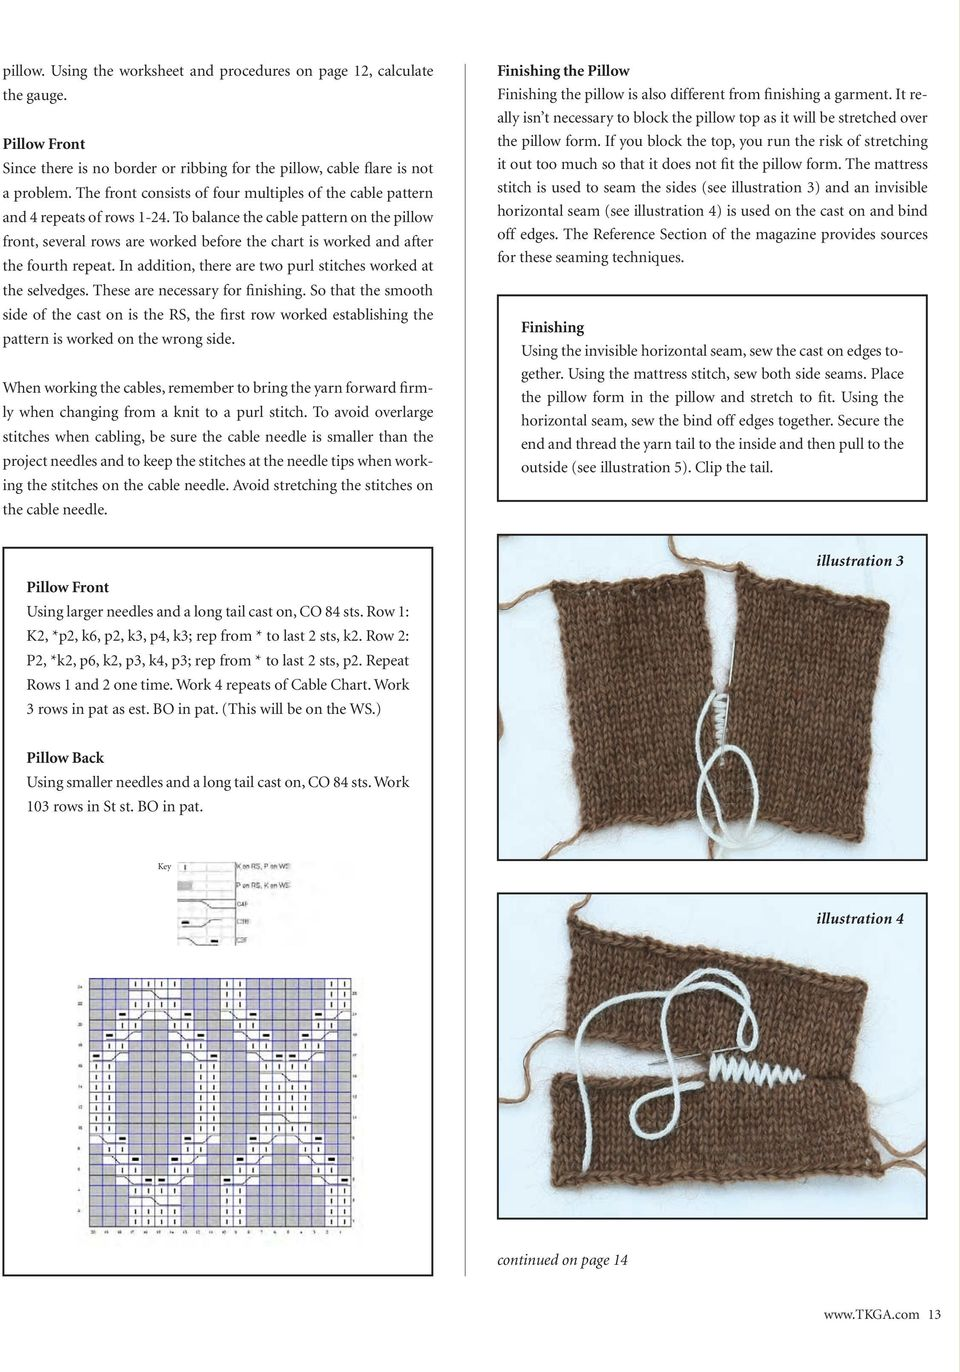 To balance the cable pattern on the pillow front, several rows are worked before the chart is worked and after the fourth repeat. In addition, there are two purl stitches worked at the selvedges.